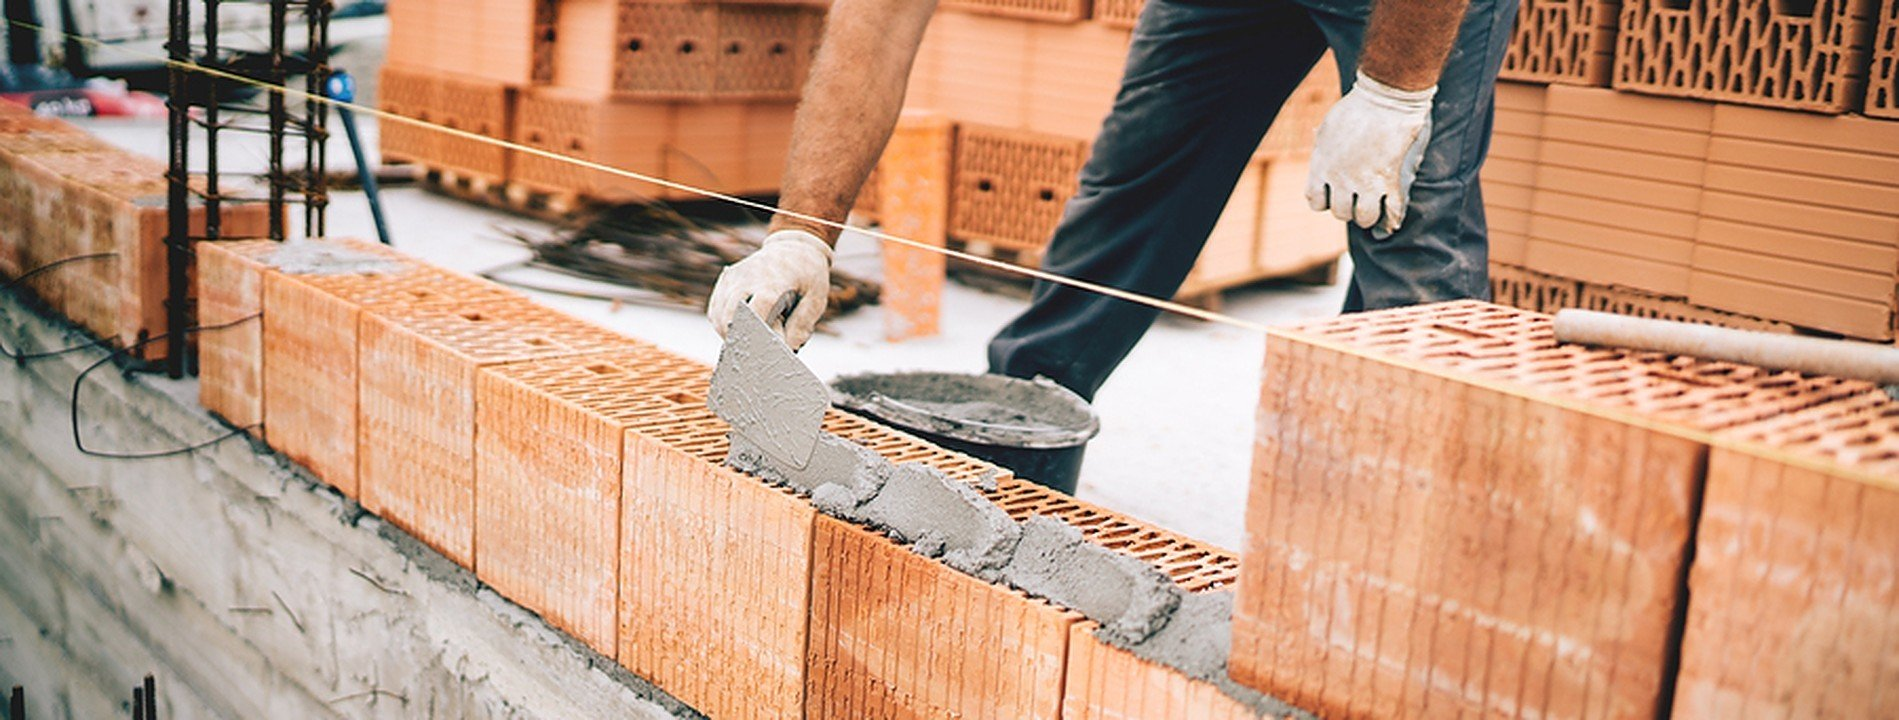 how to pass your C-29 masonry contractor license exam in california and meet the CSLB license requirements